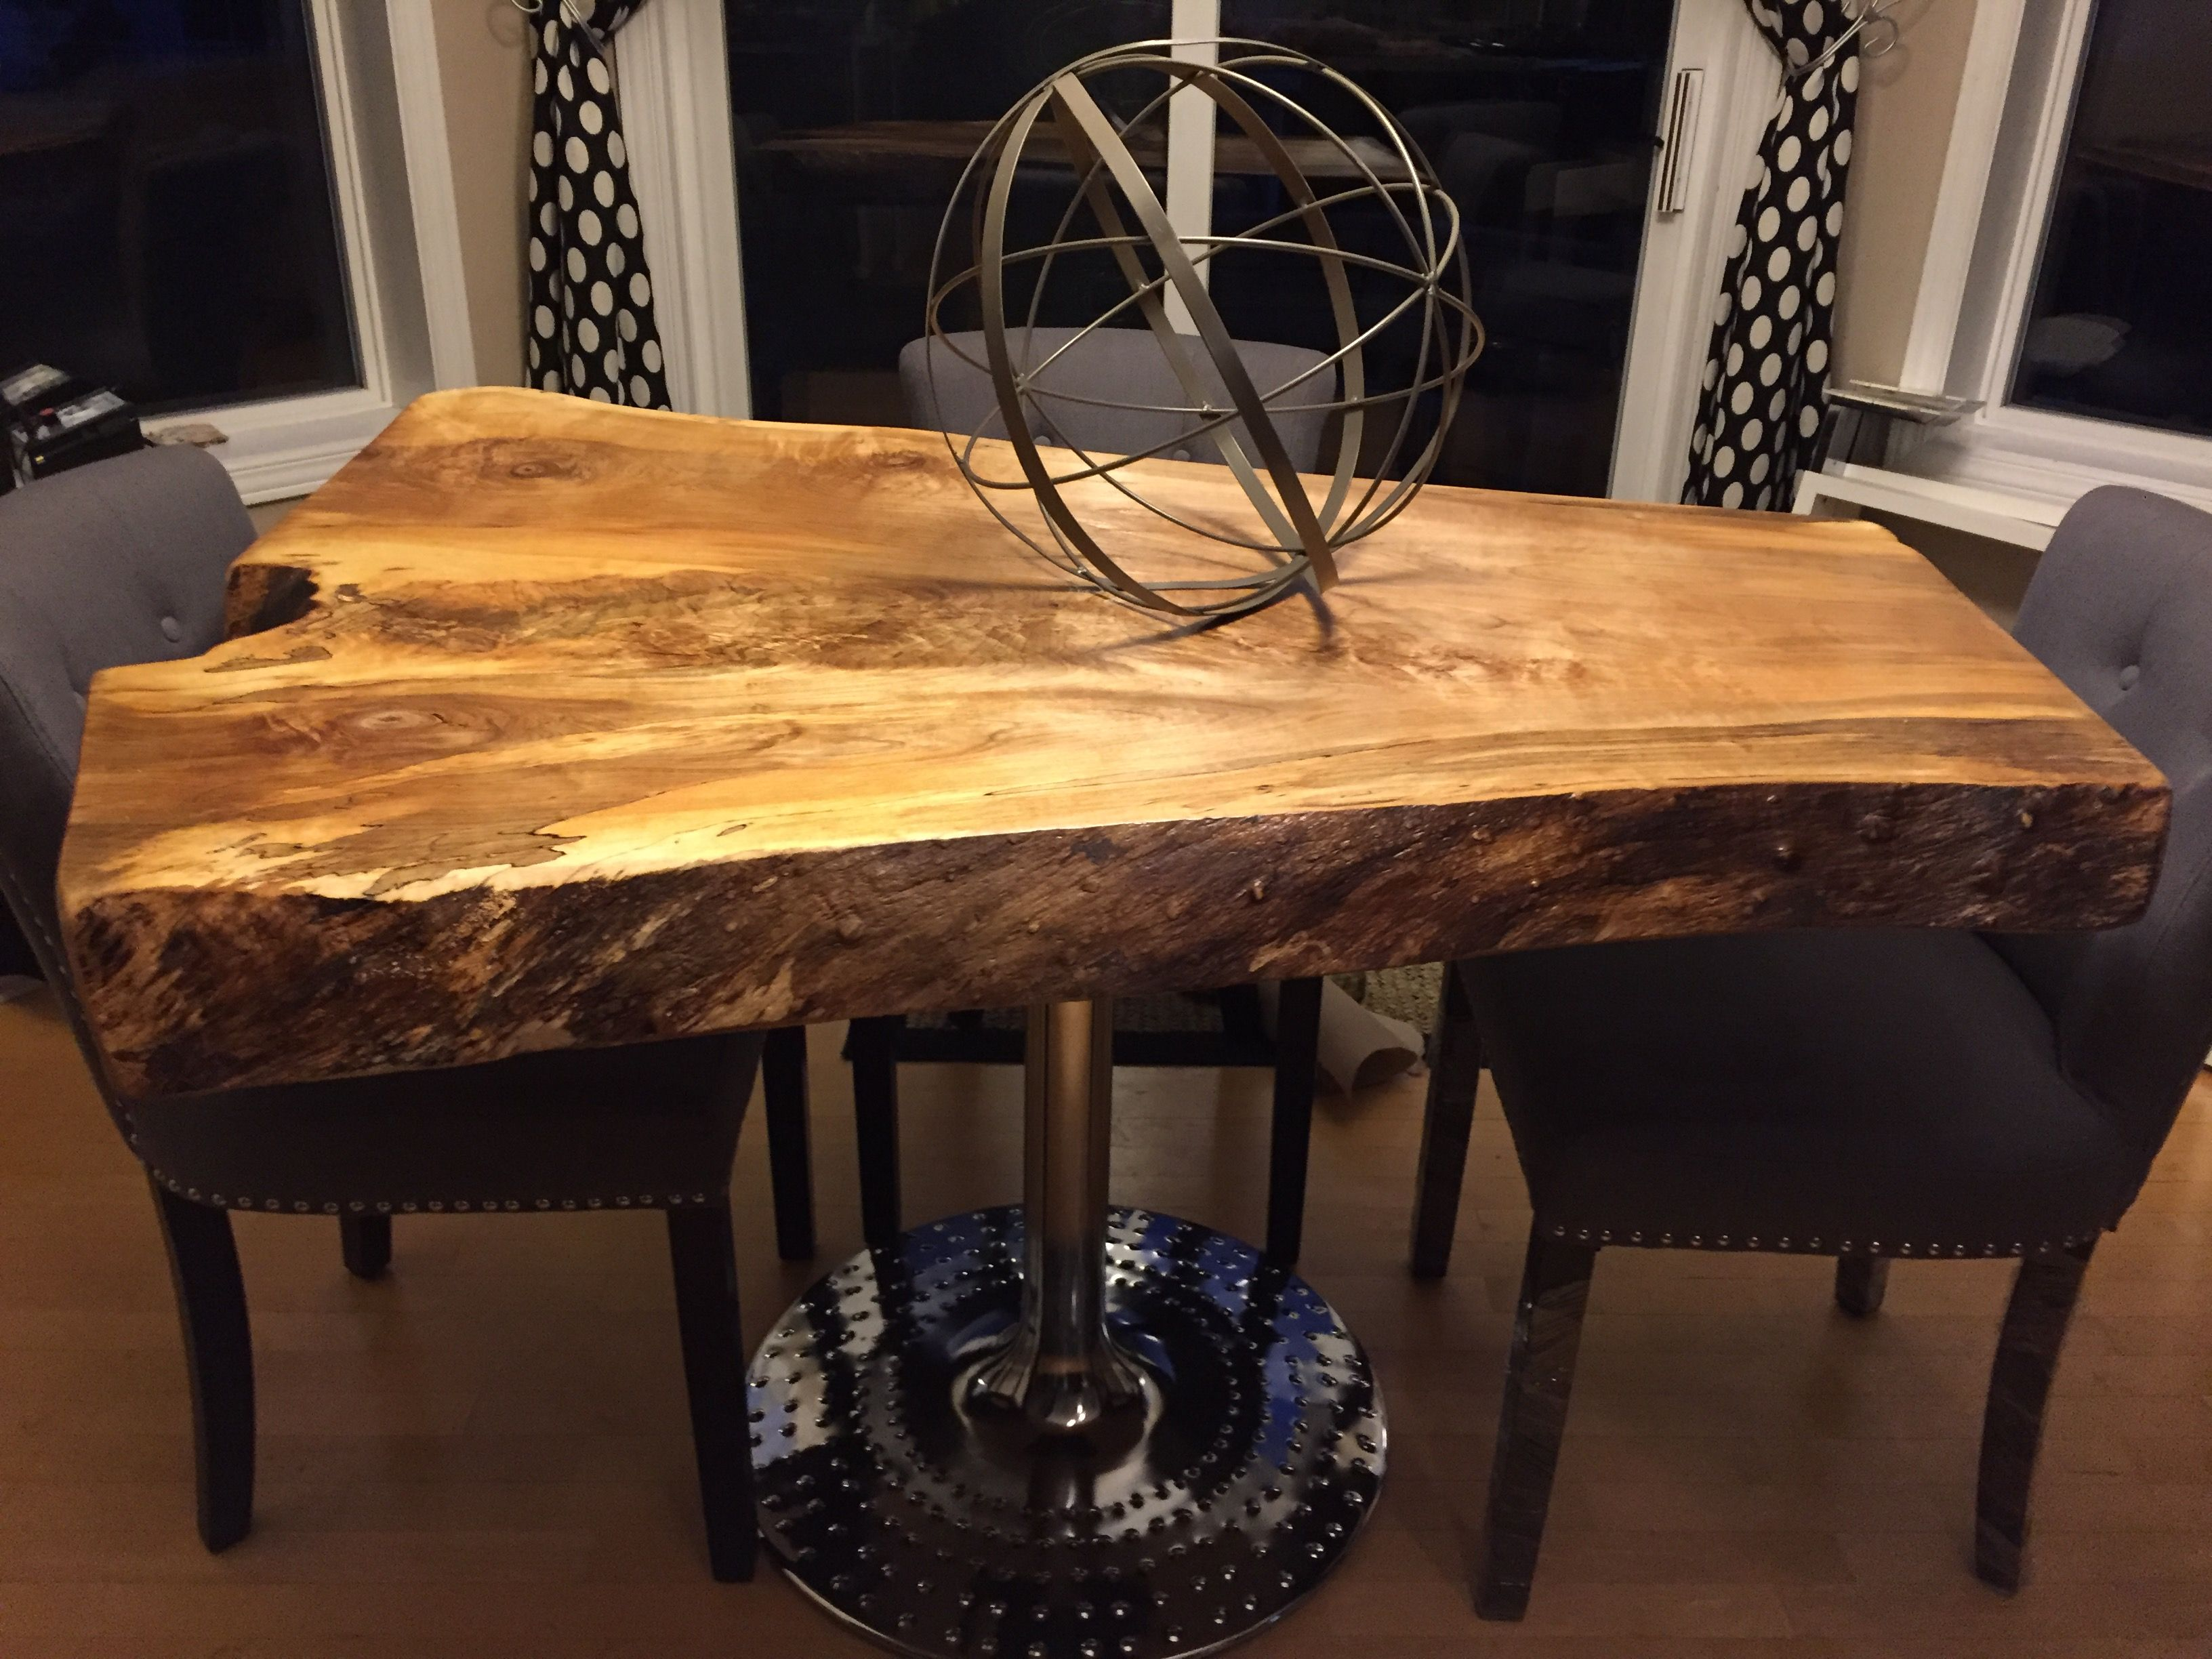 Live Edge Tables, Live Edge Wood Tables With Metal Legs